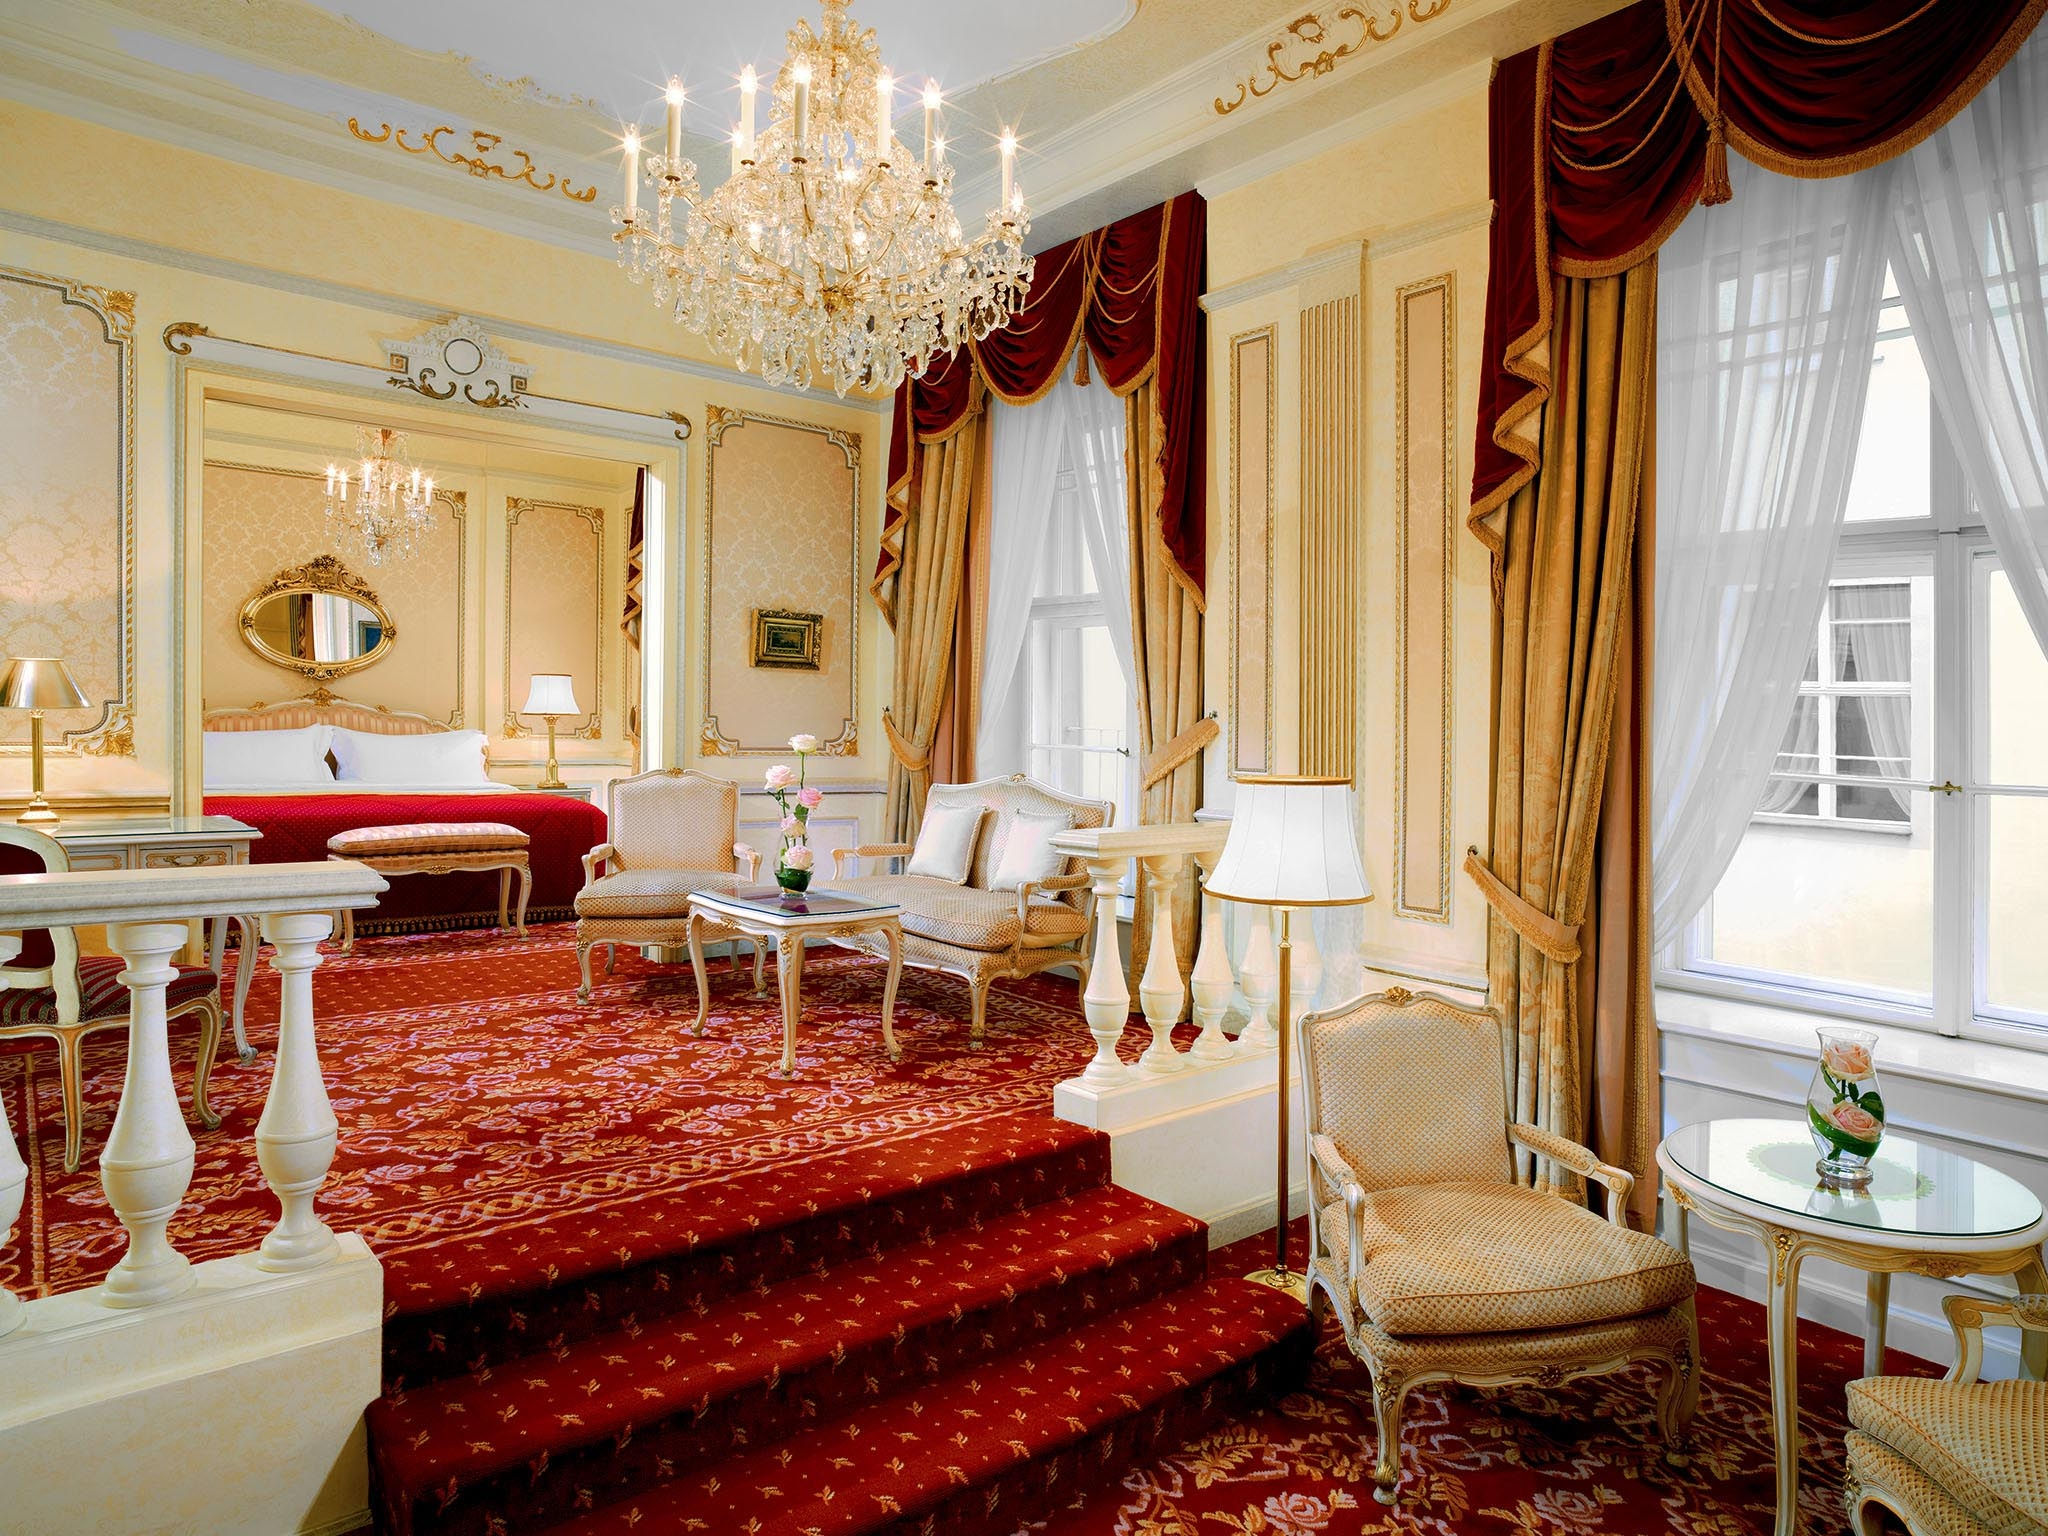 Maria Theresia Suite in Wiens Luxushotel Hotel Imperial